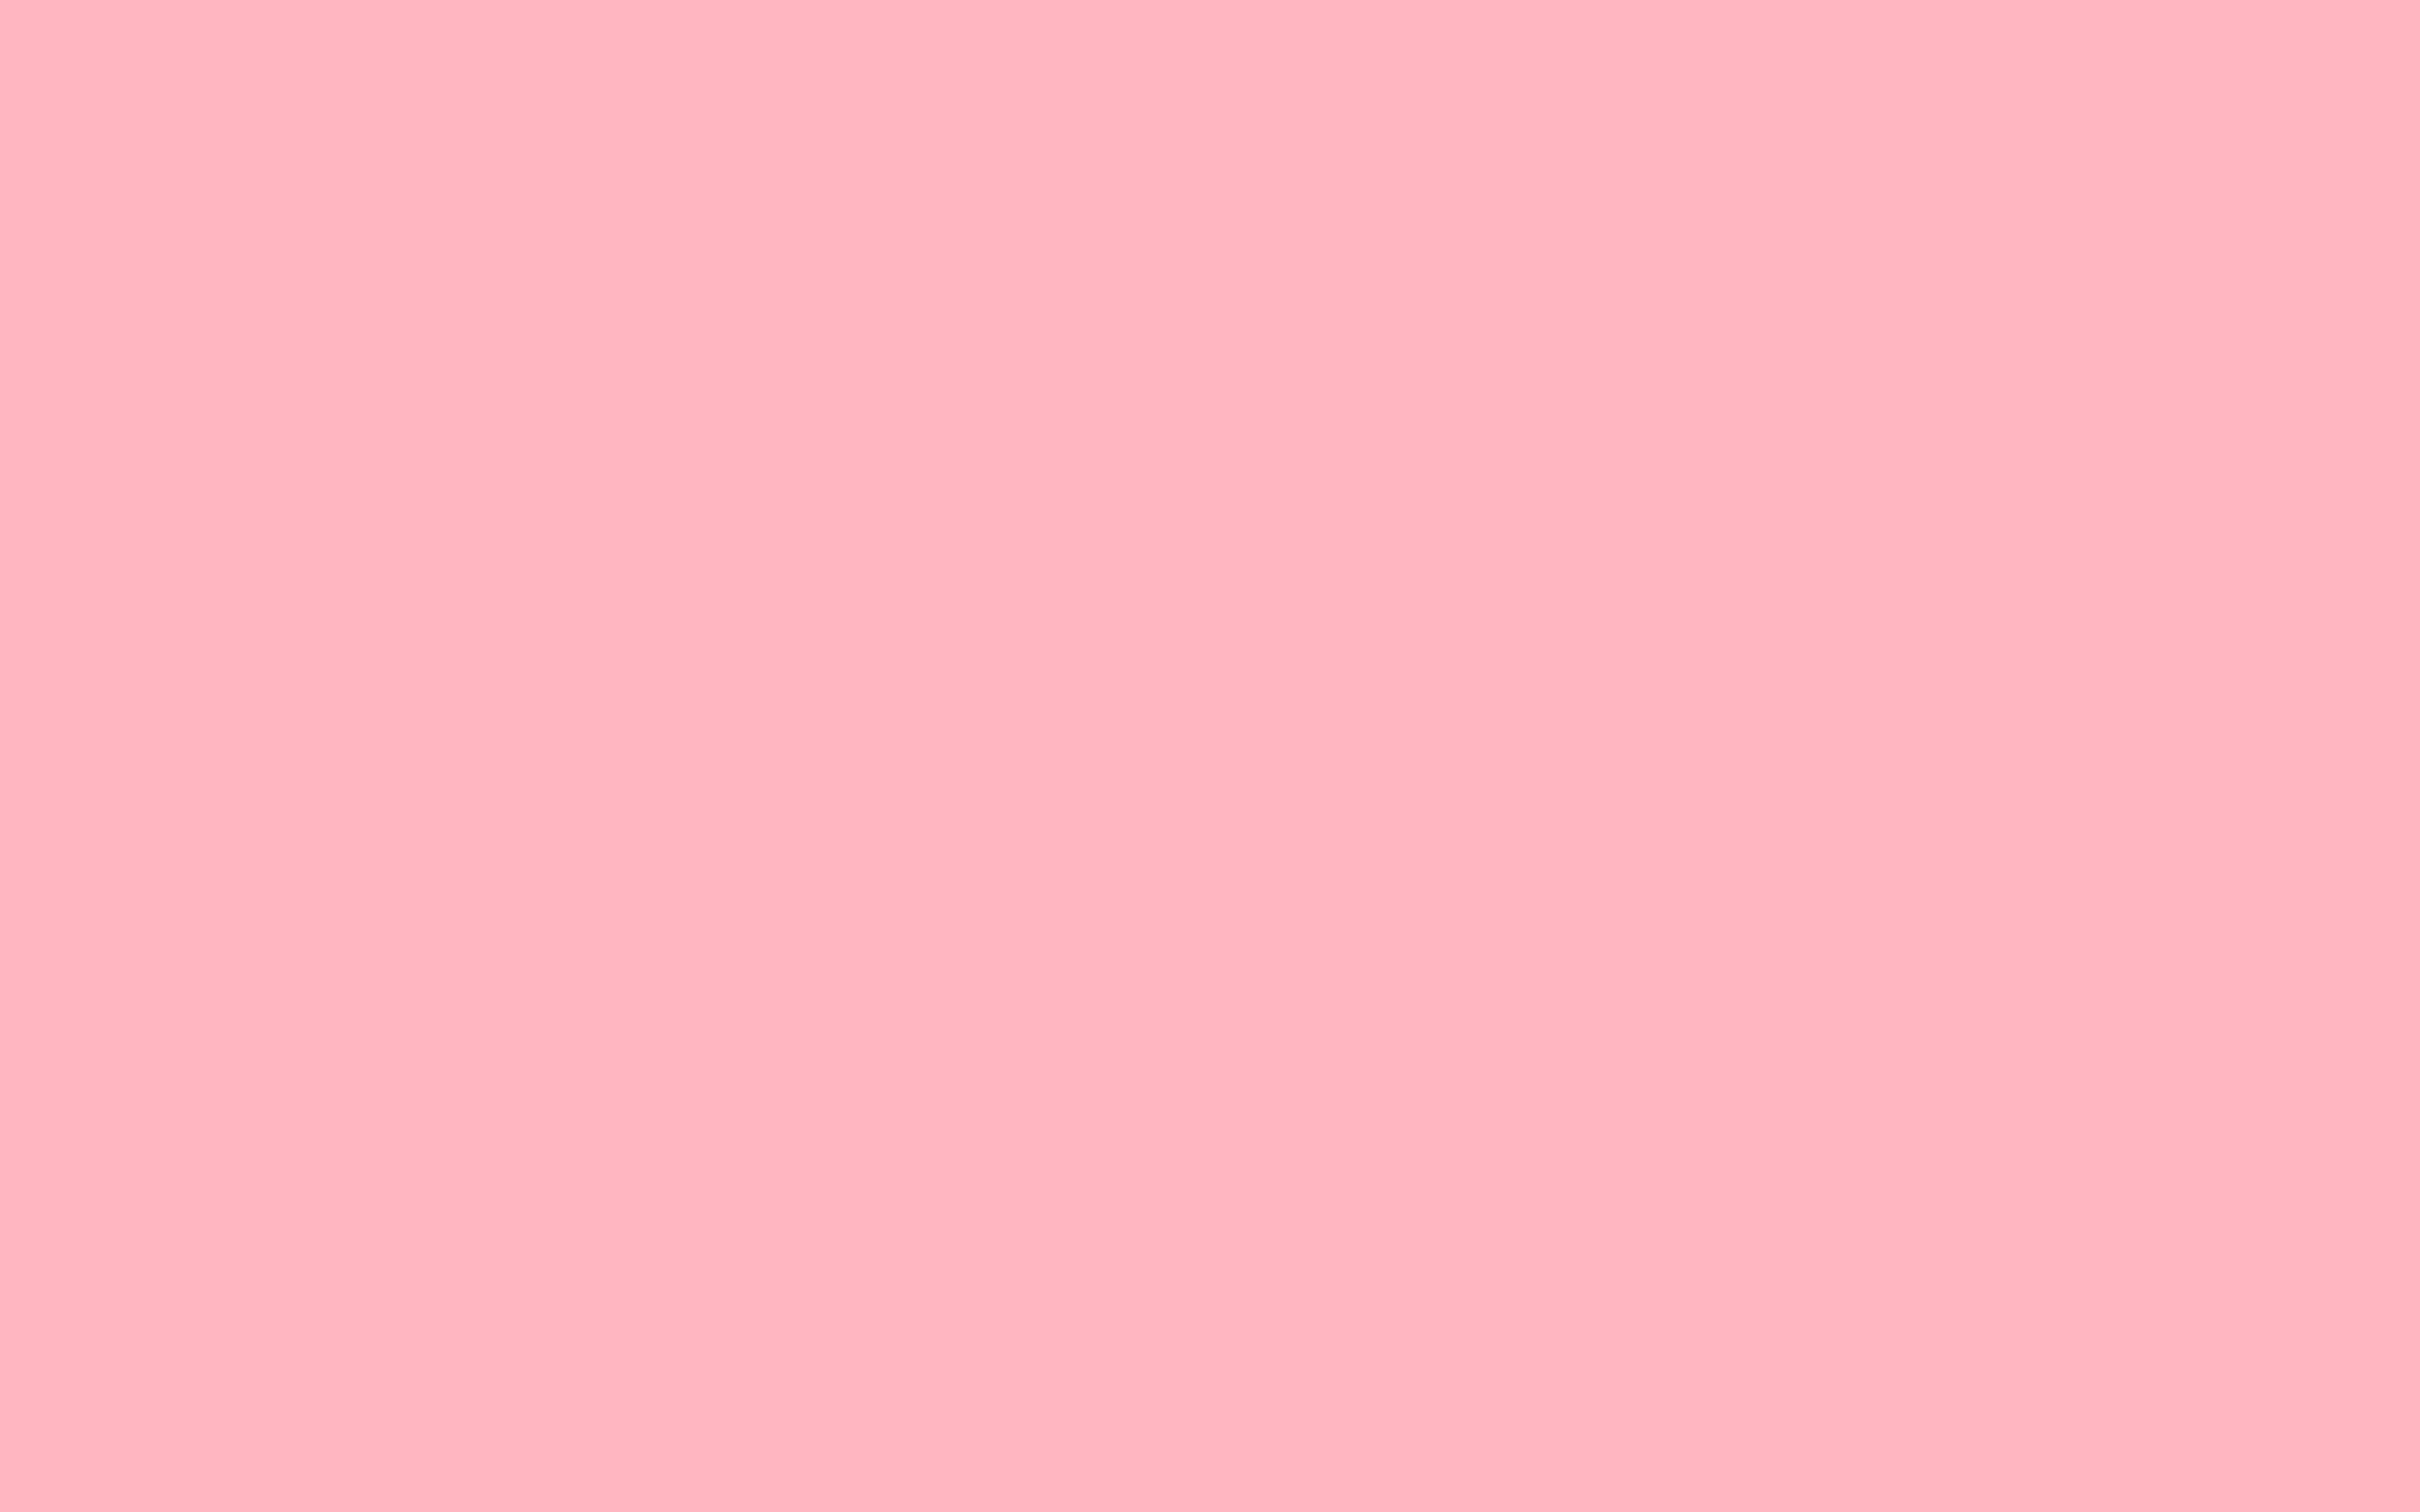 Plain pink wallpaper for iPhone 5/6 plus | Simple iPhone ... |Plain Pink Backgrounds